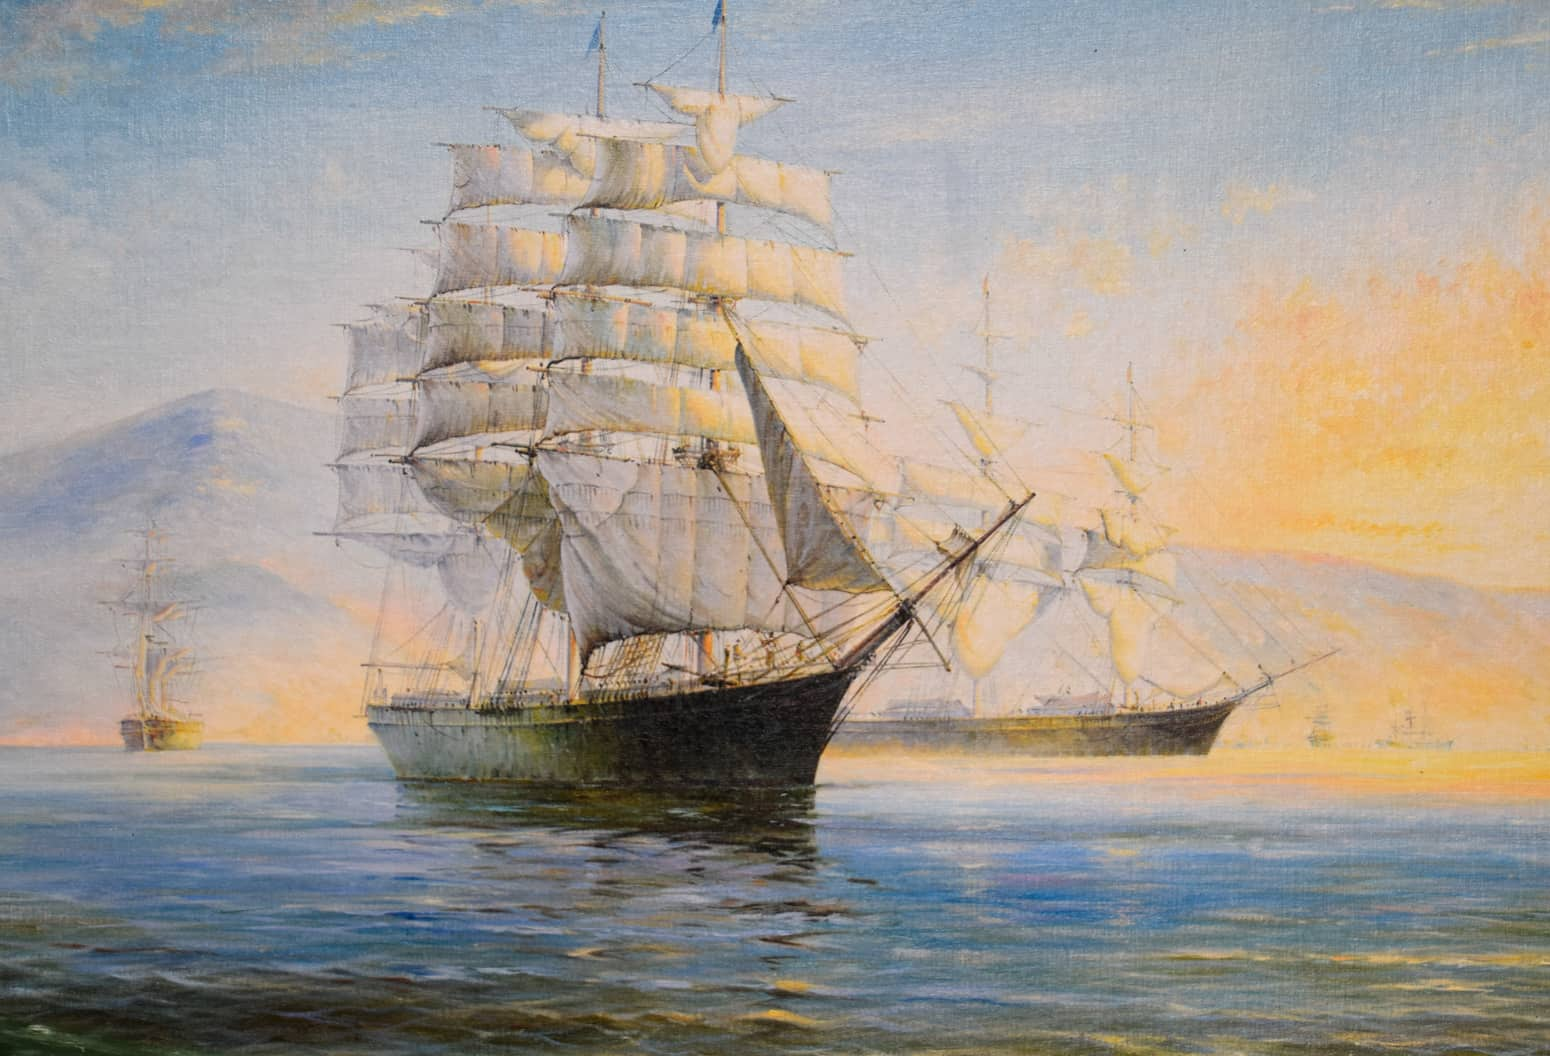 A painting of an old ship at sea